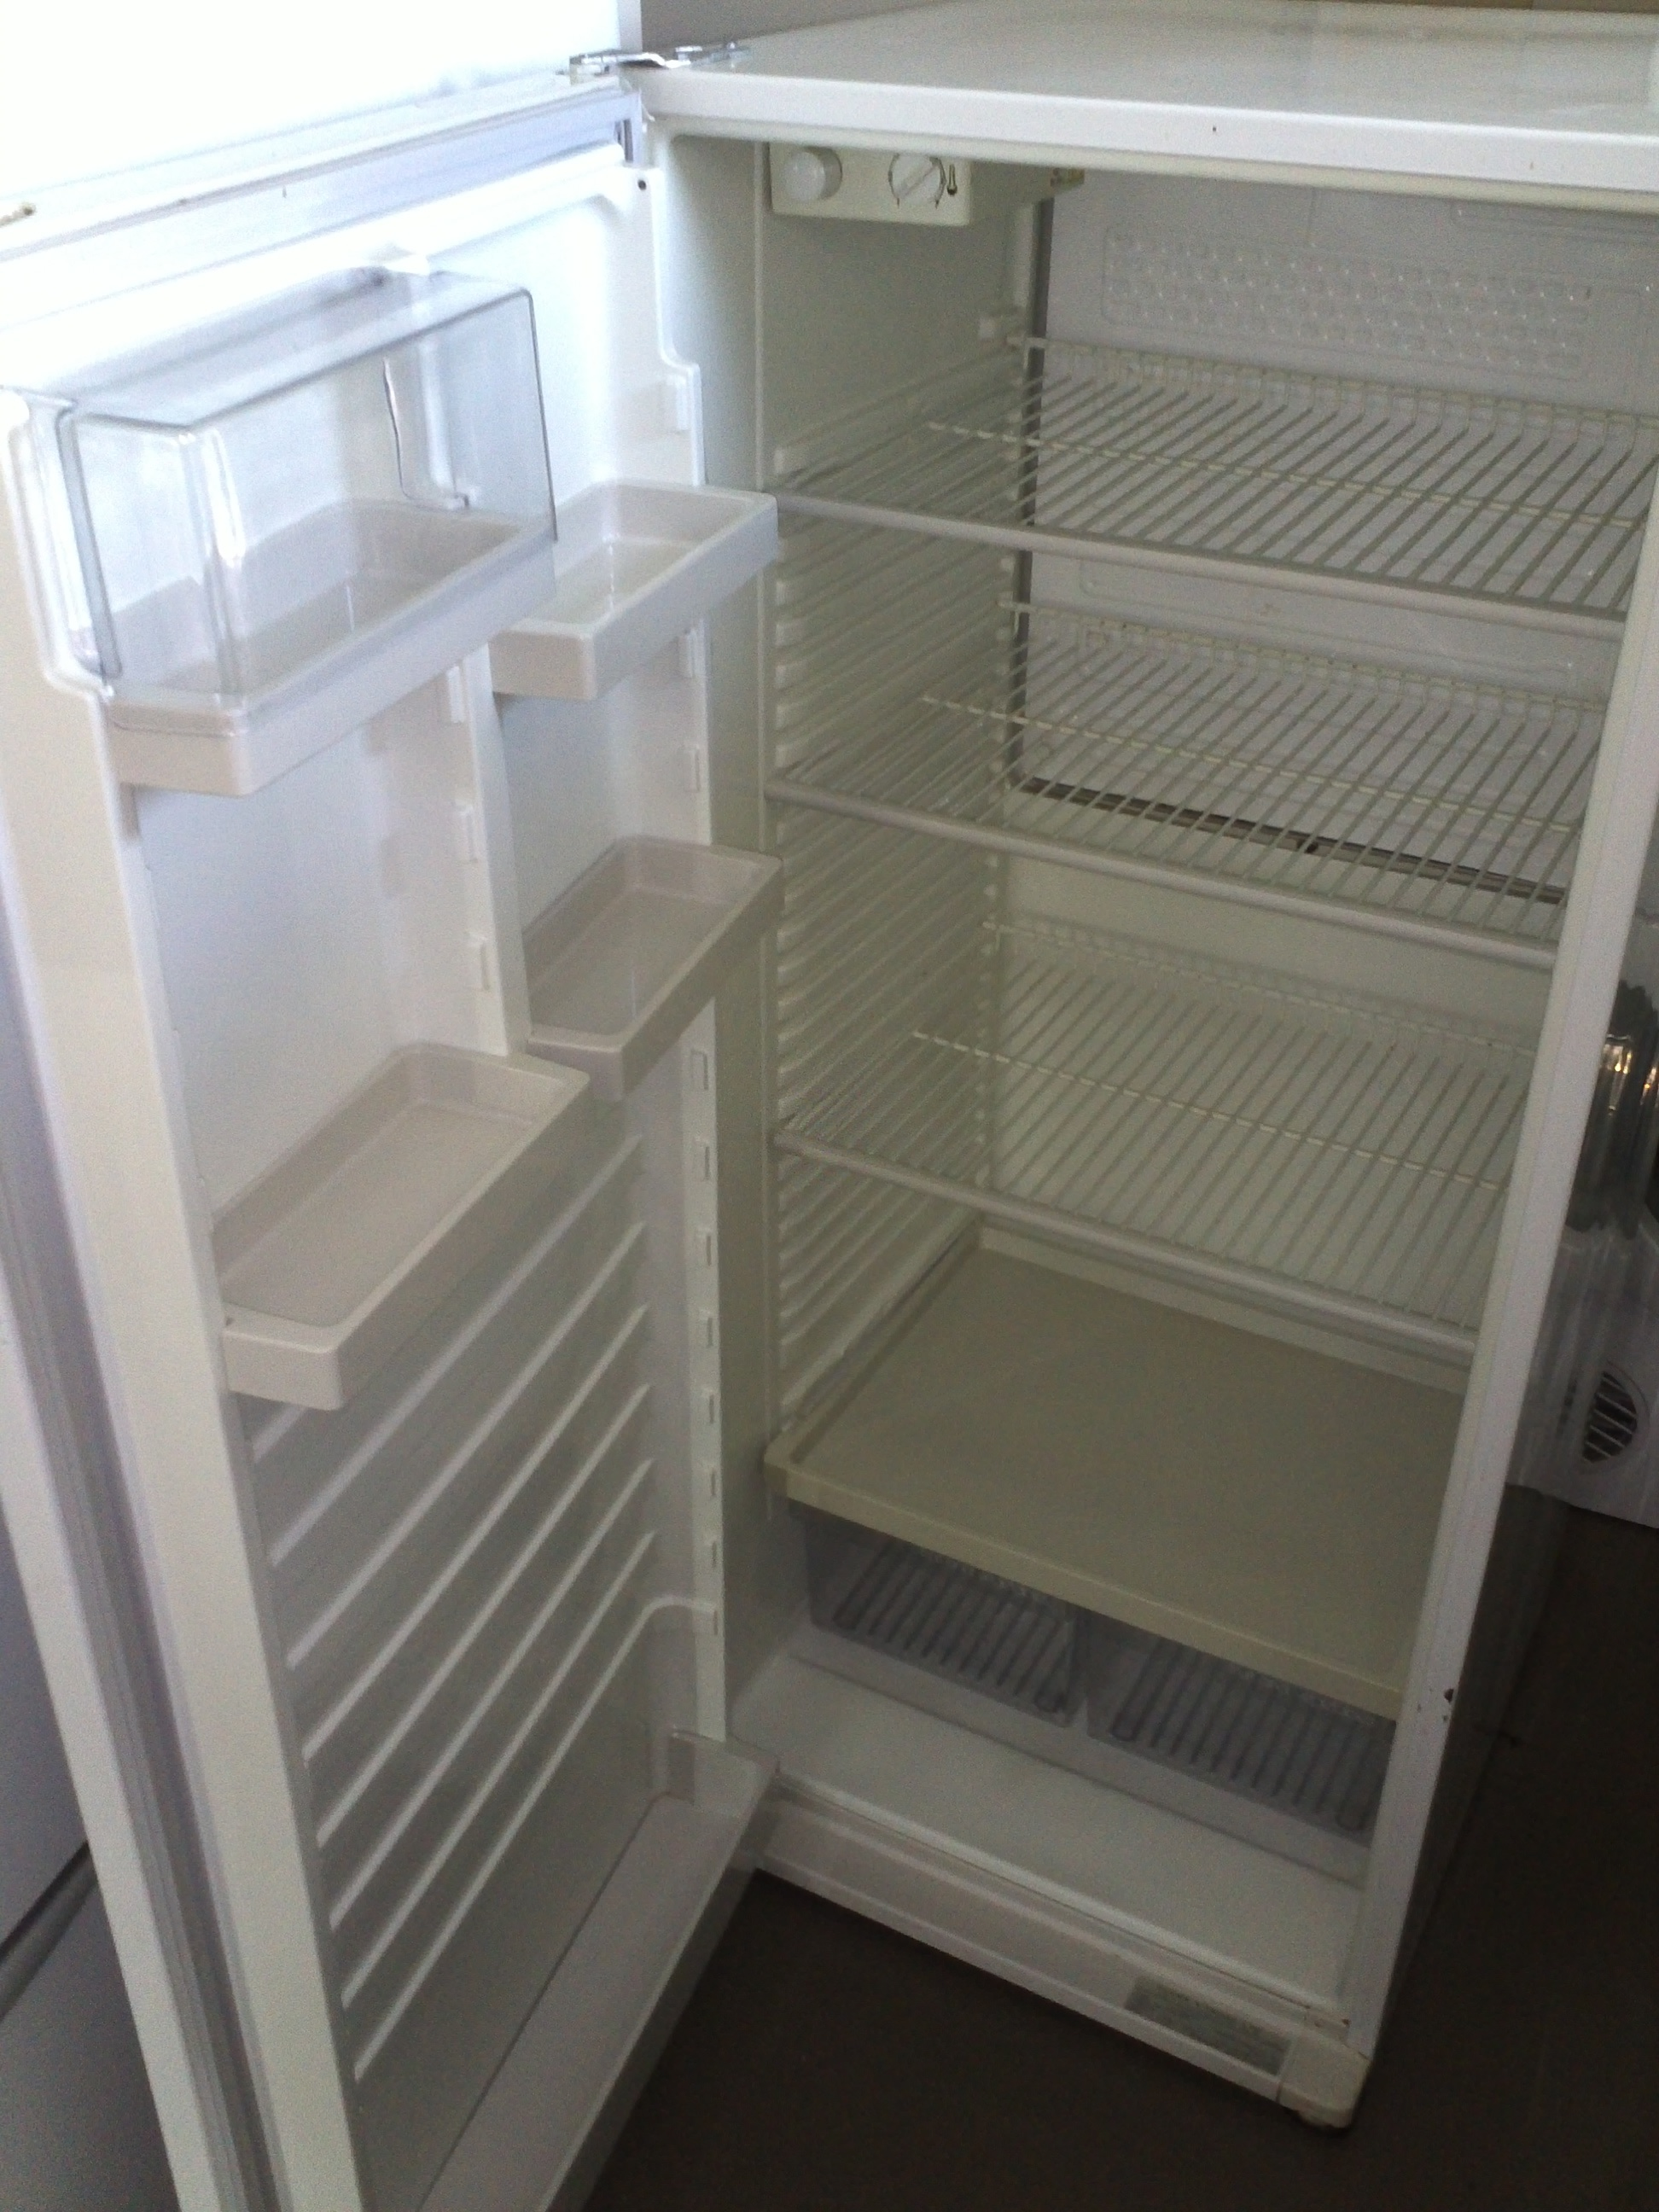 Party Fridge 370 litre